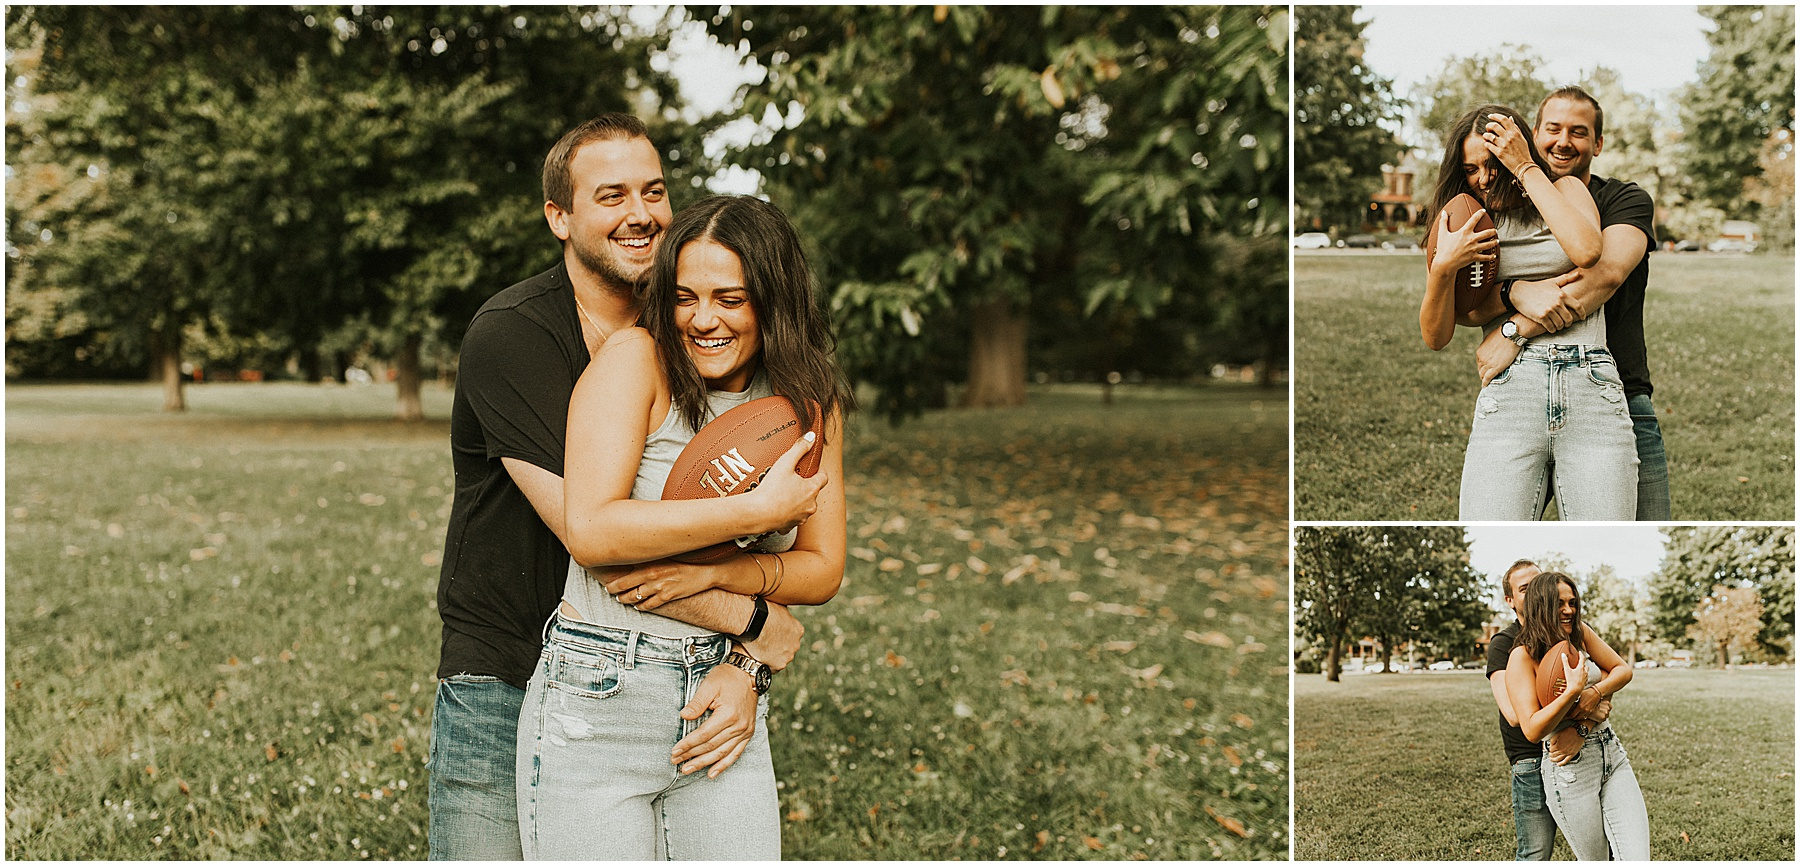 Unique and fun engagement session ideas_0021.jpg